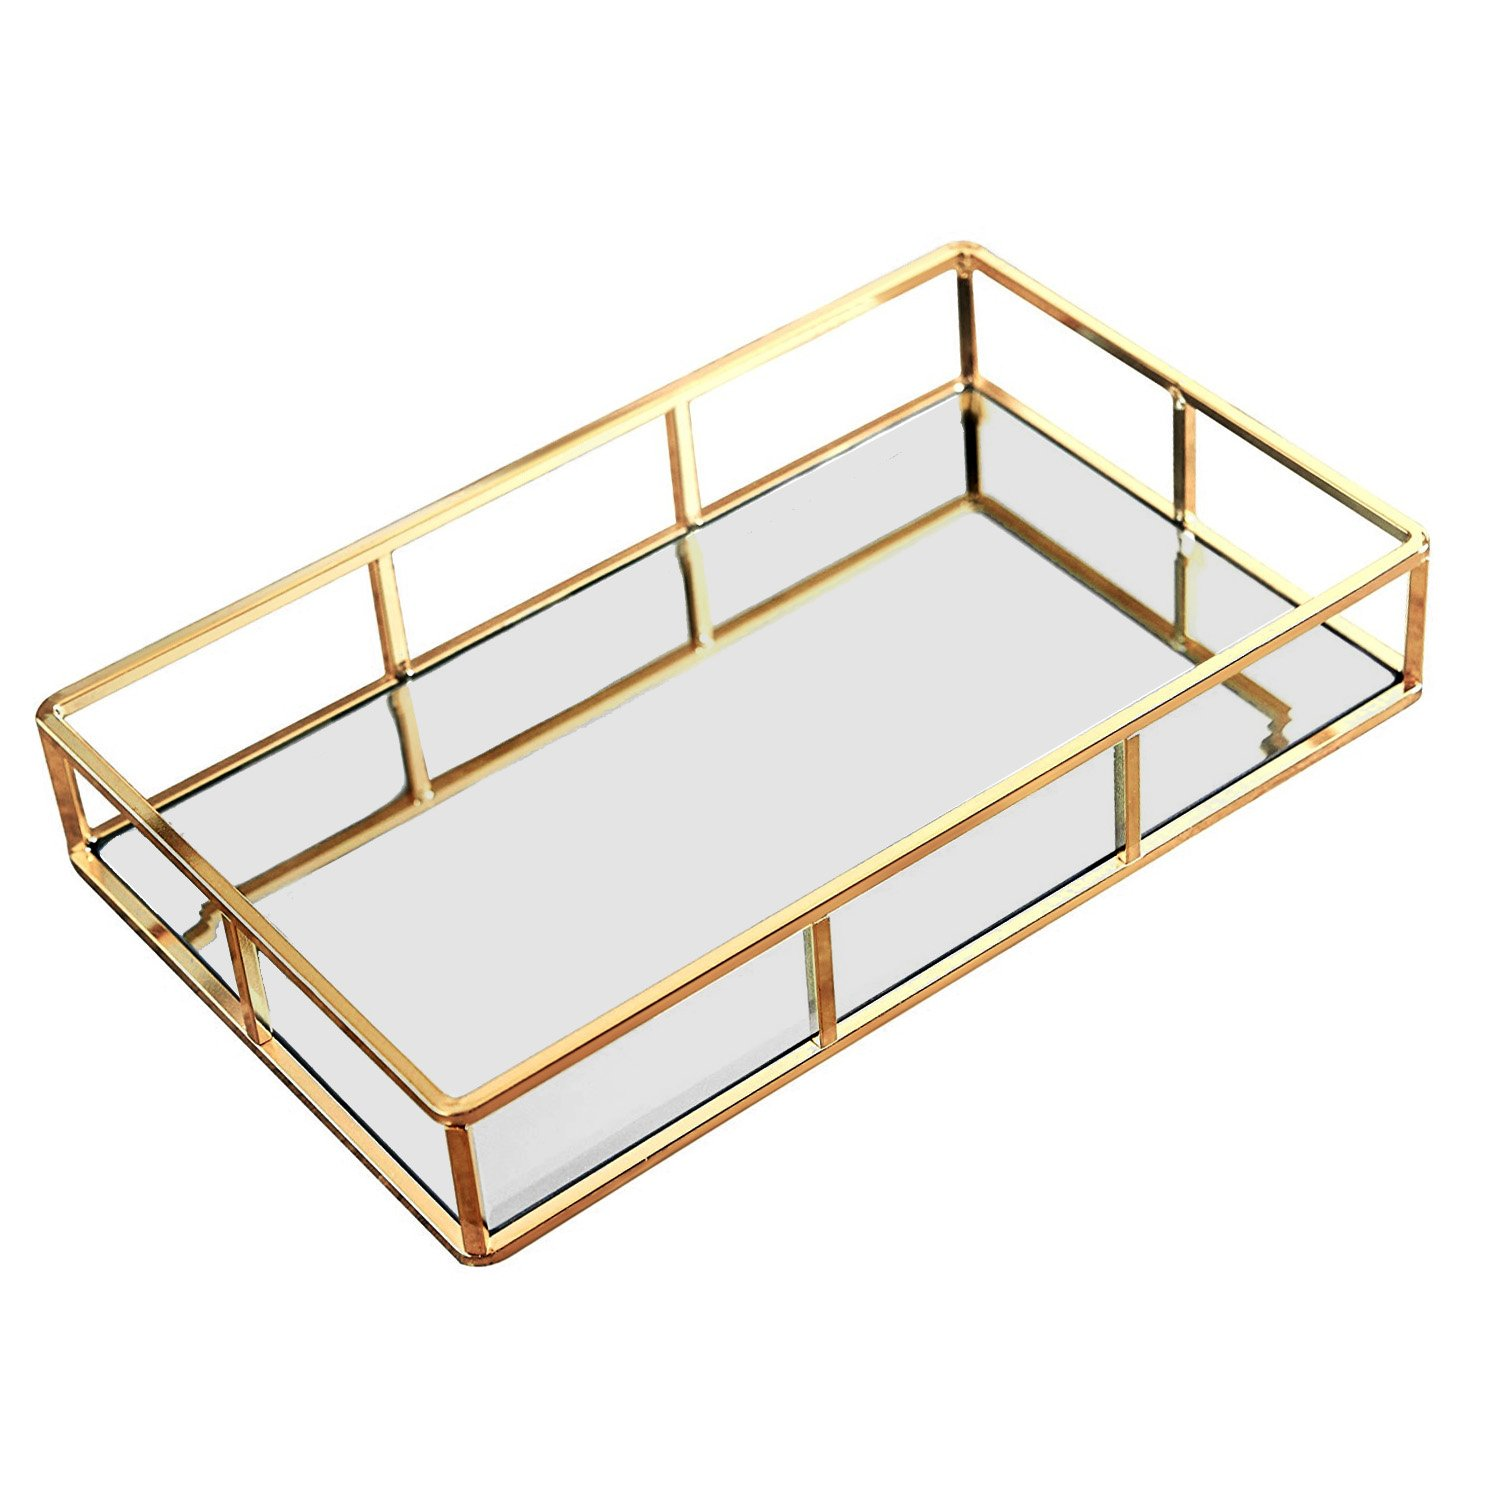 Hersoo Vintage Mirrored Glass Metal Tray for Makeup /&Jewelry Organizer Ornate Decorative for Vanity DesignD